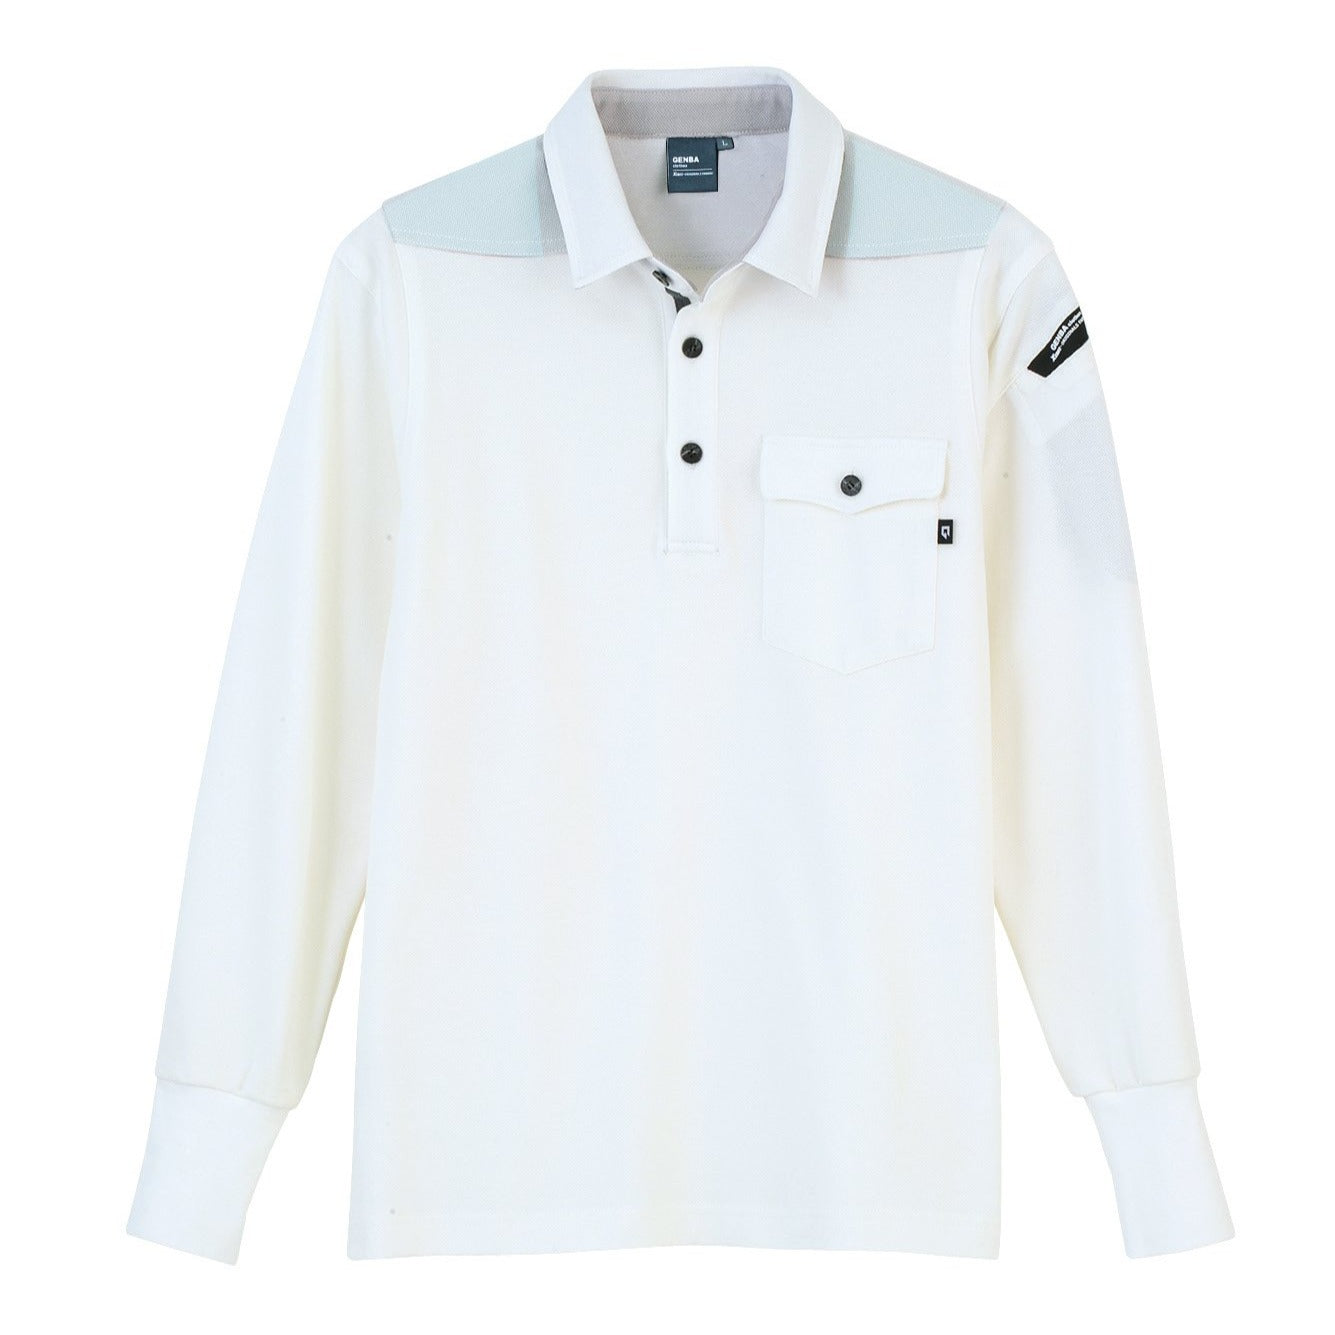 XEBEC 6055 Long sleeve polo shirt